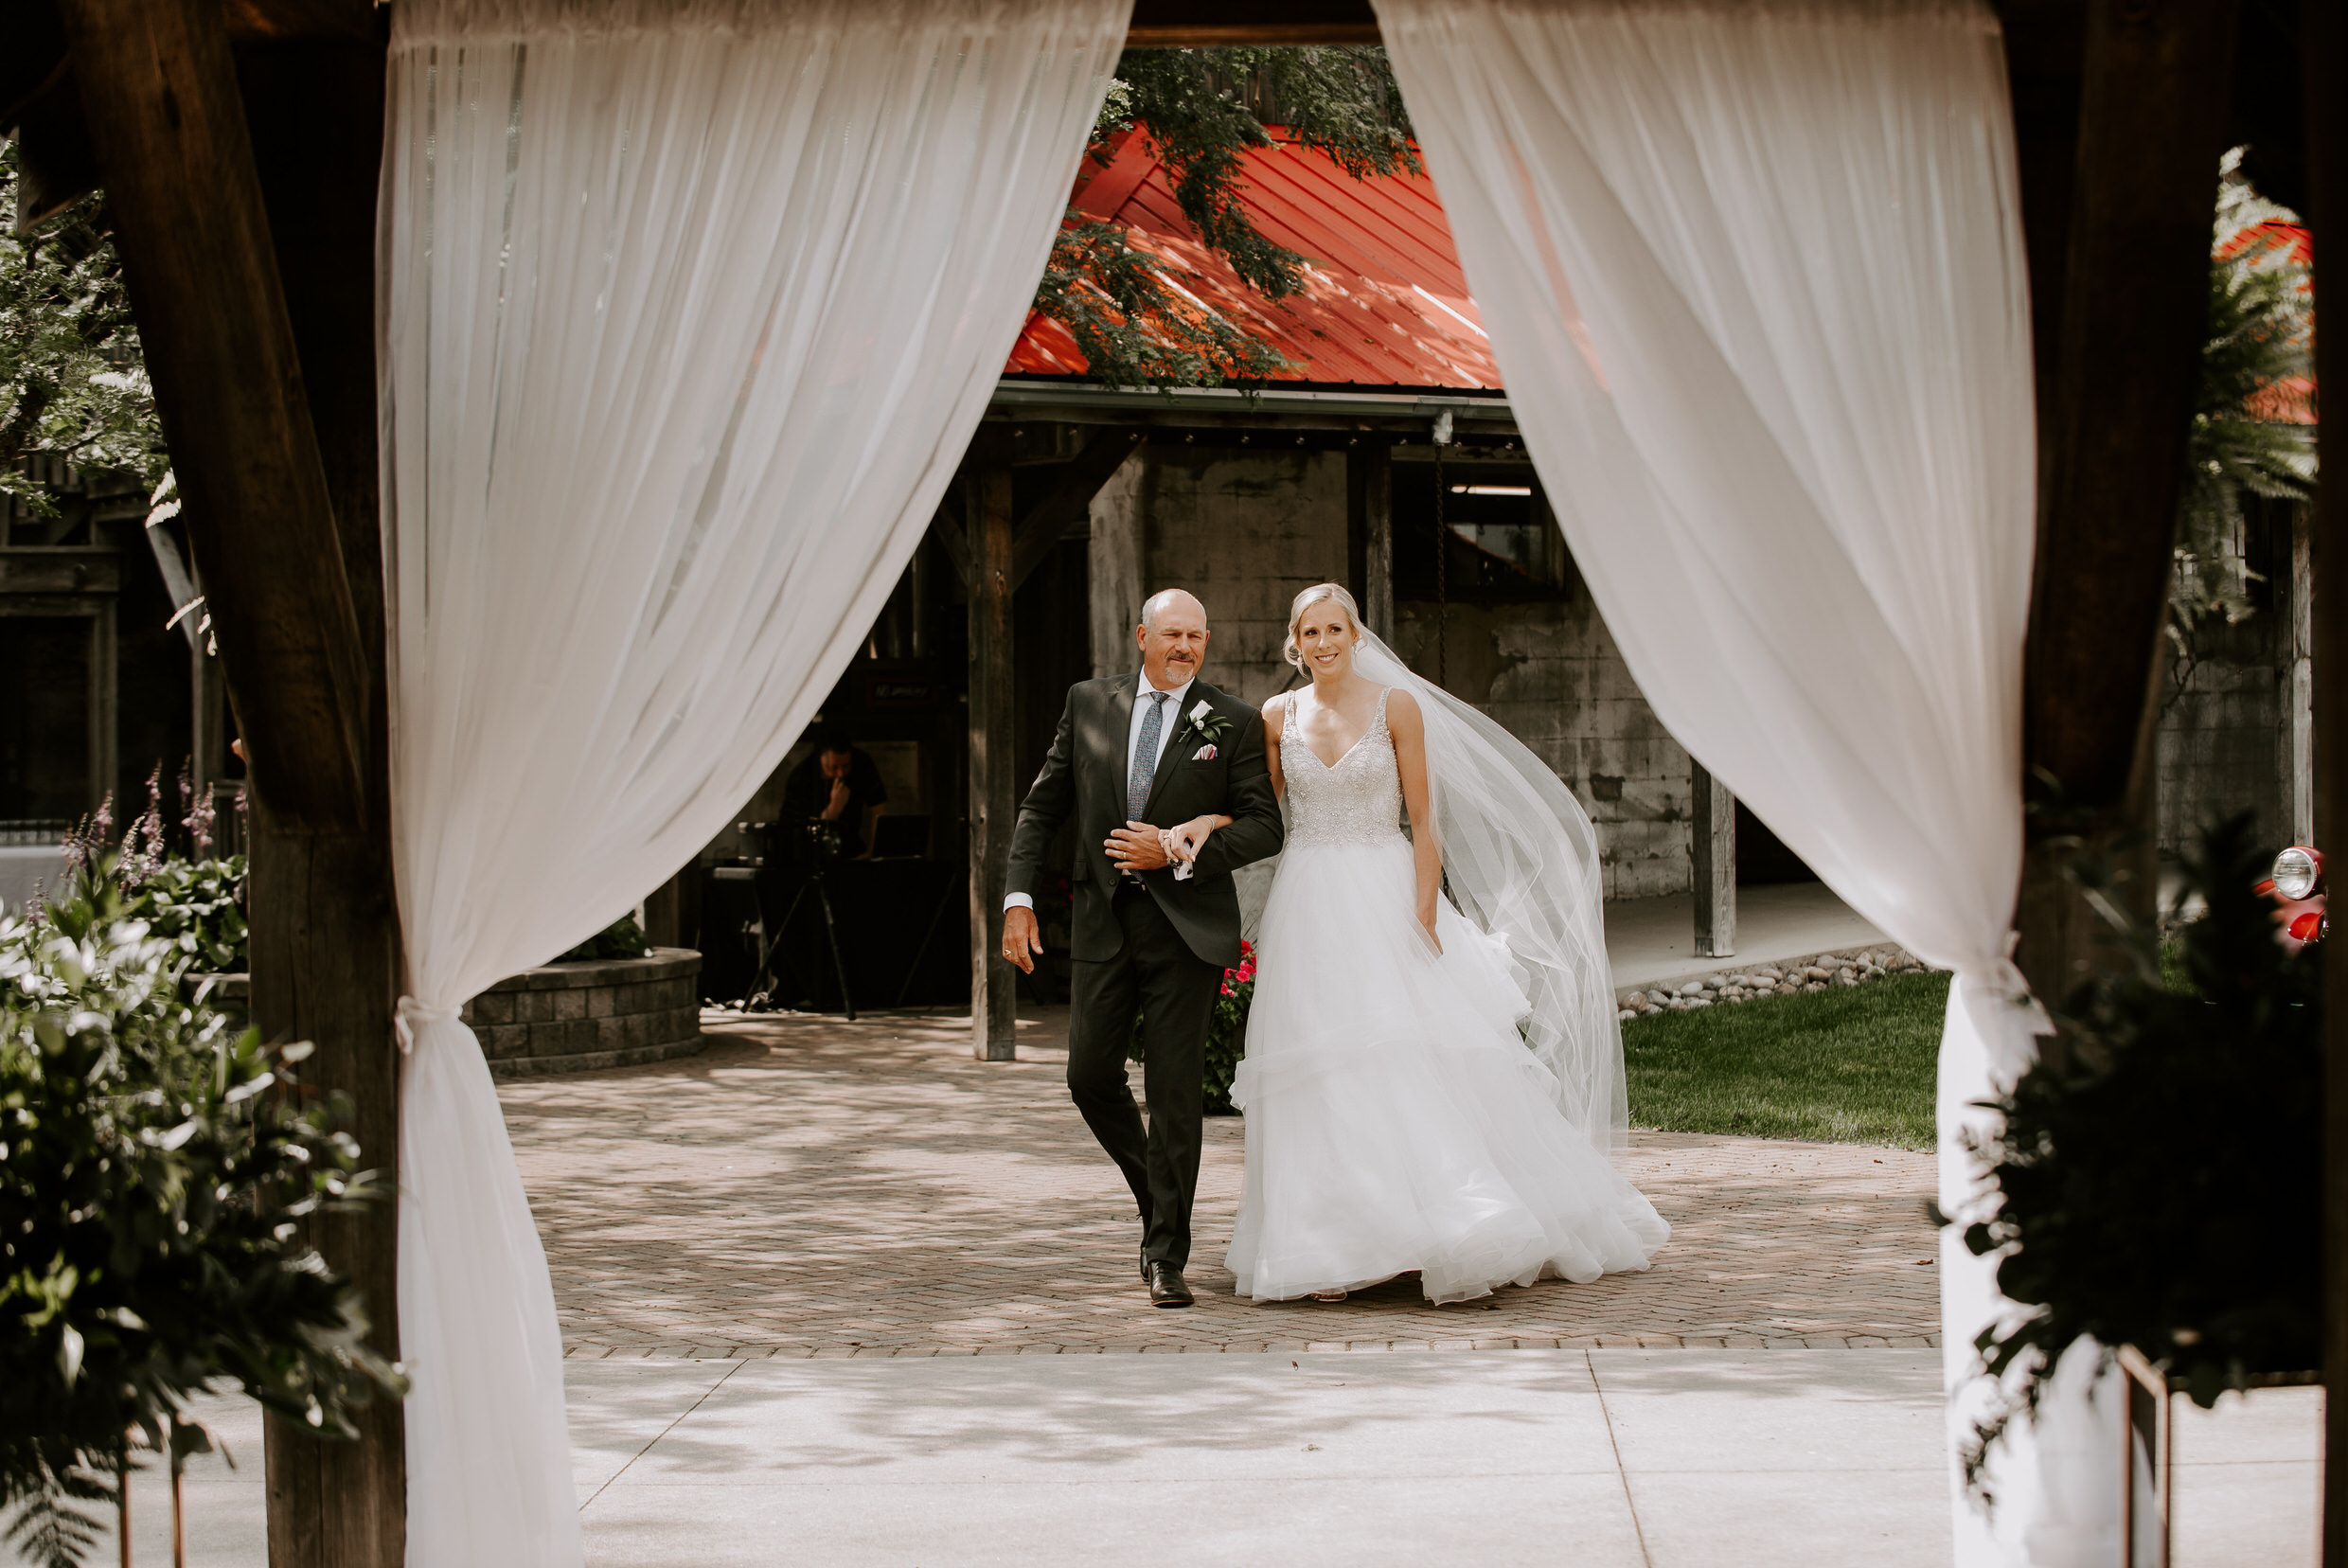 Belcroft Estates Wedding - walking down the aisle